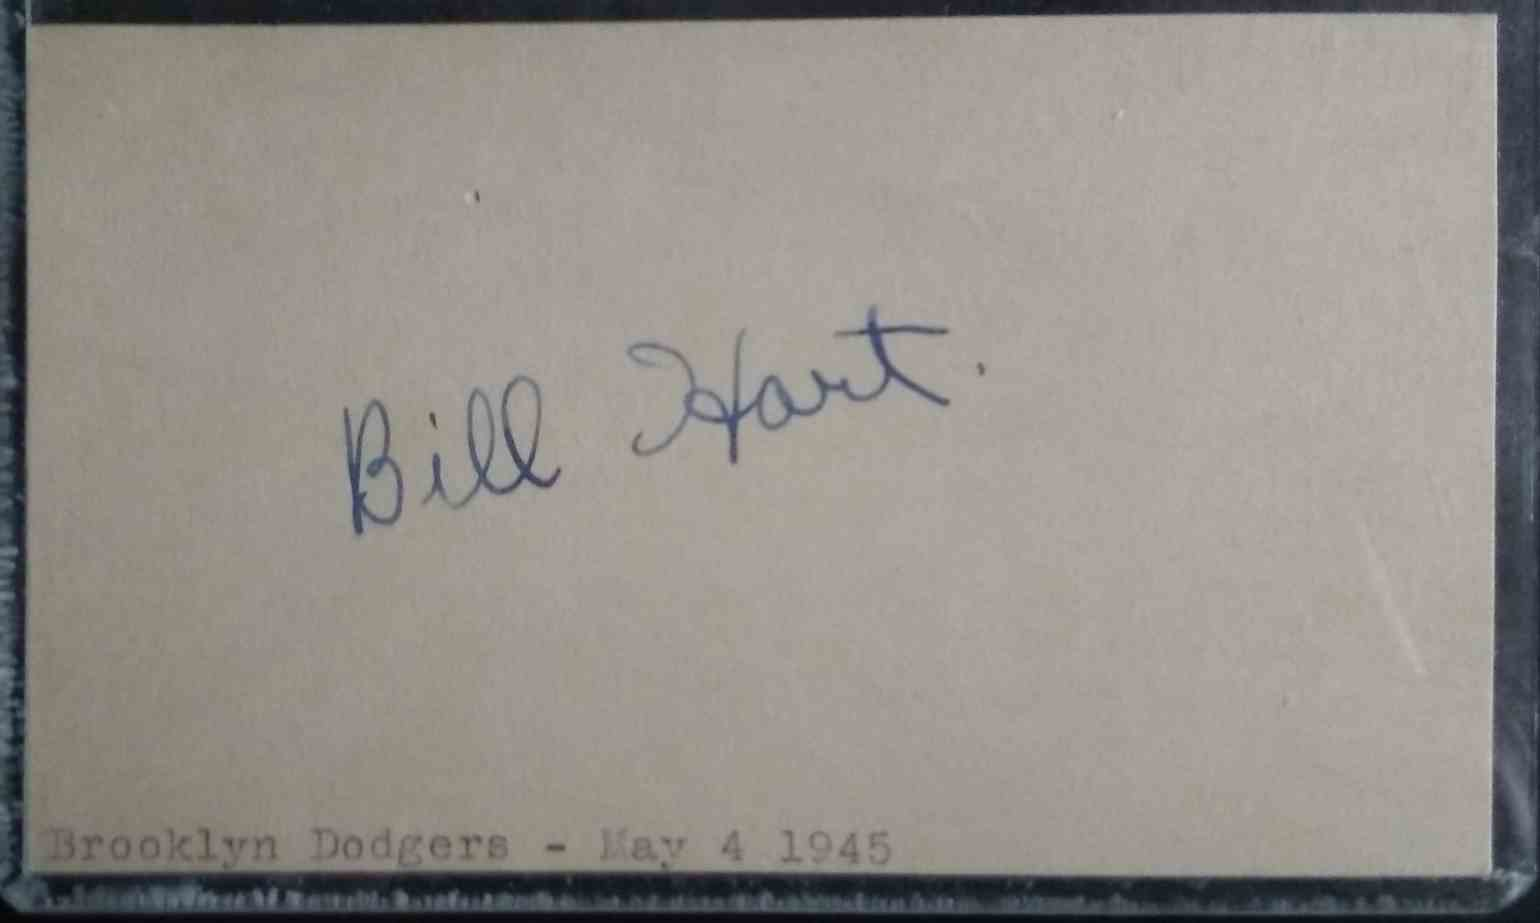 1943 3X5 Bill Hart card back image